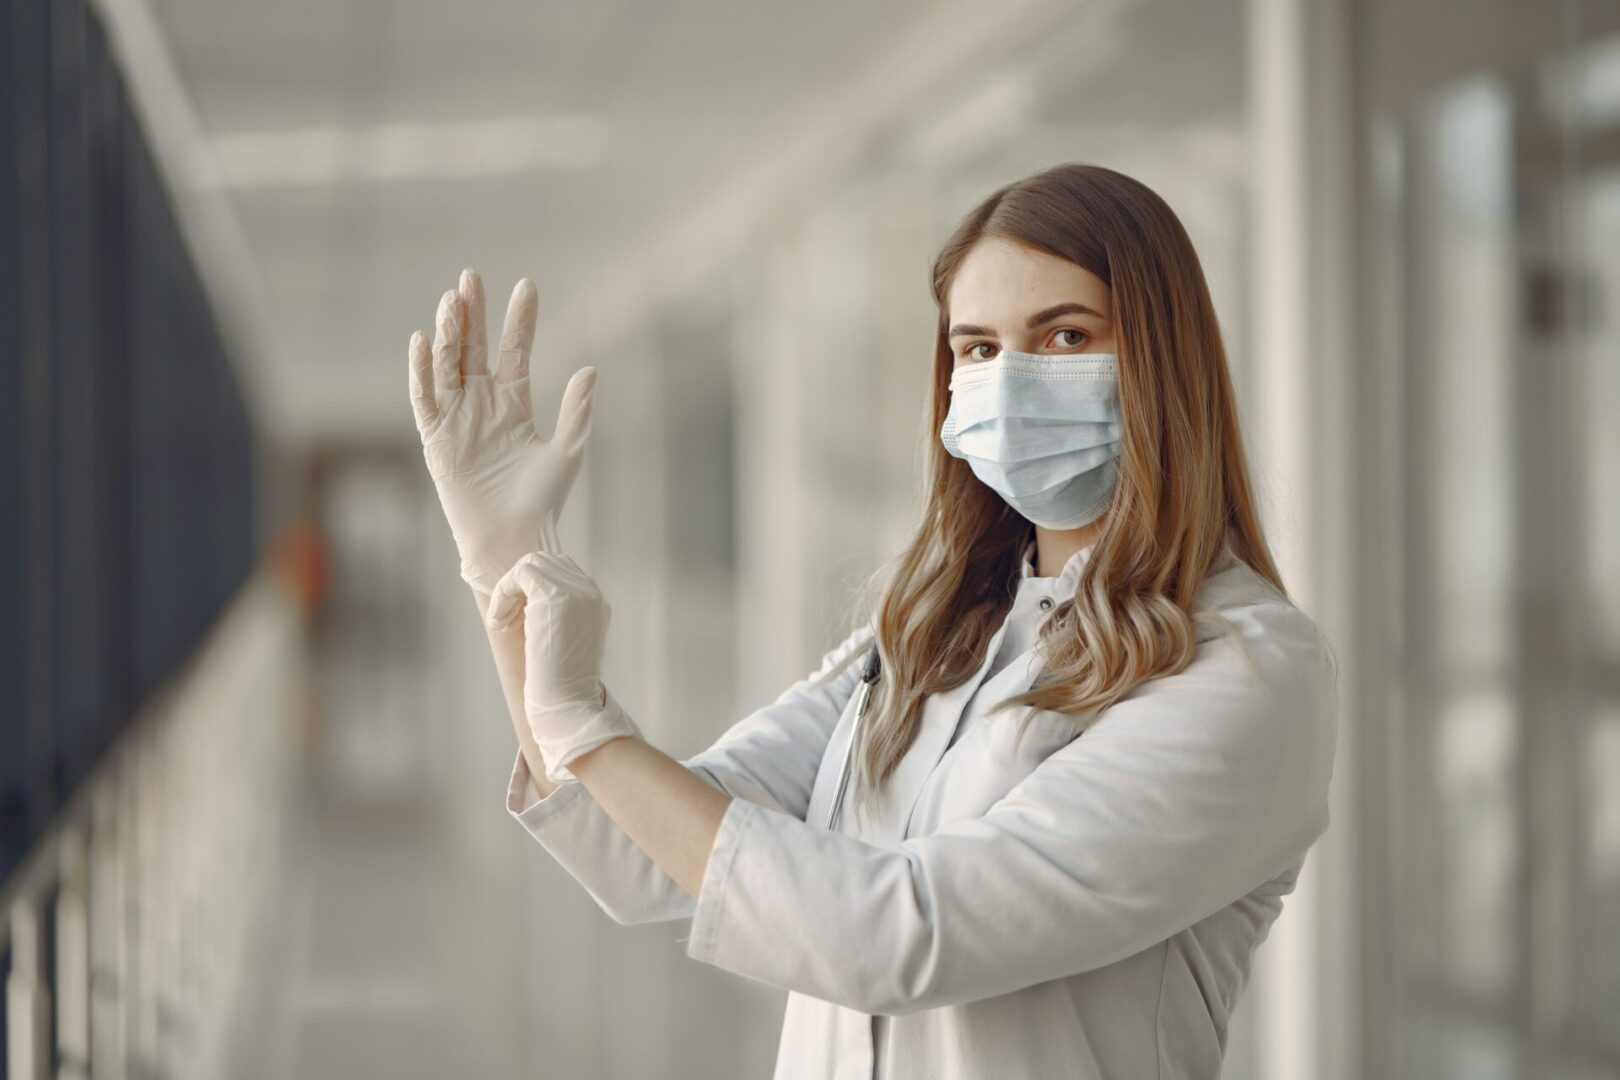 woman-in-white-long-sleeve-shirt-wearing-white-gloves-3985160